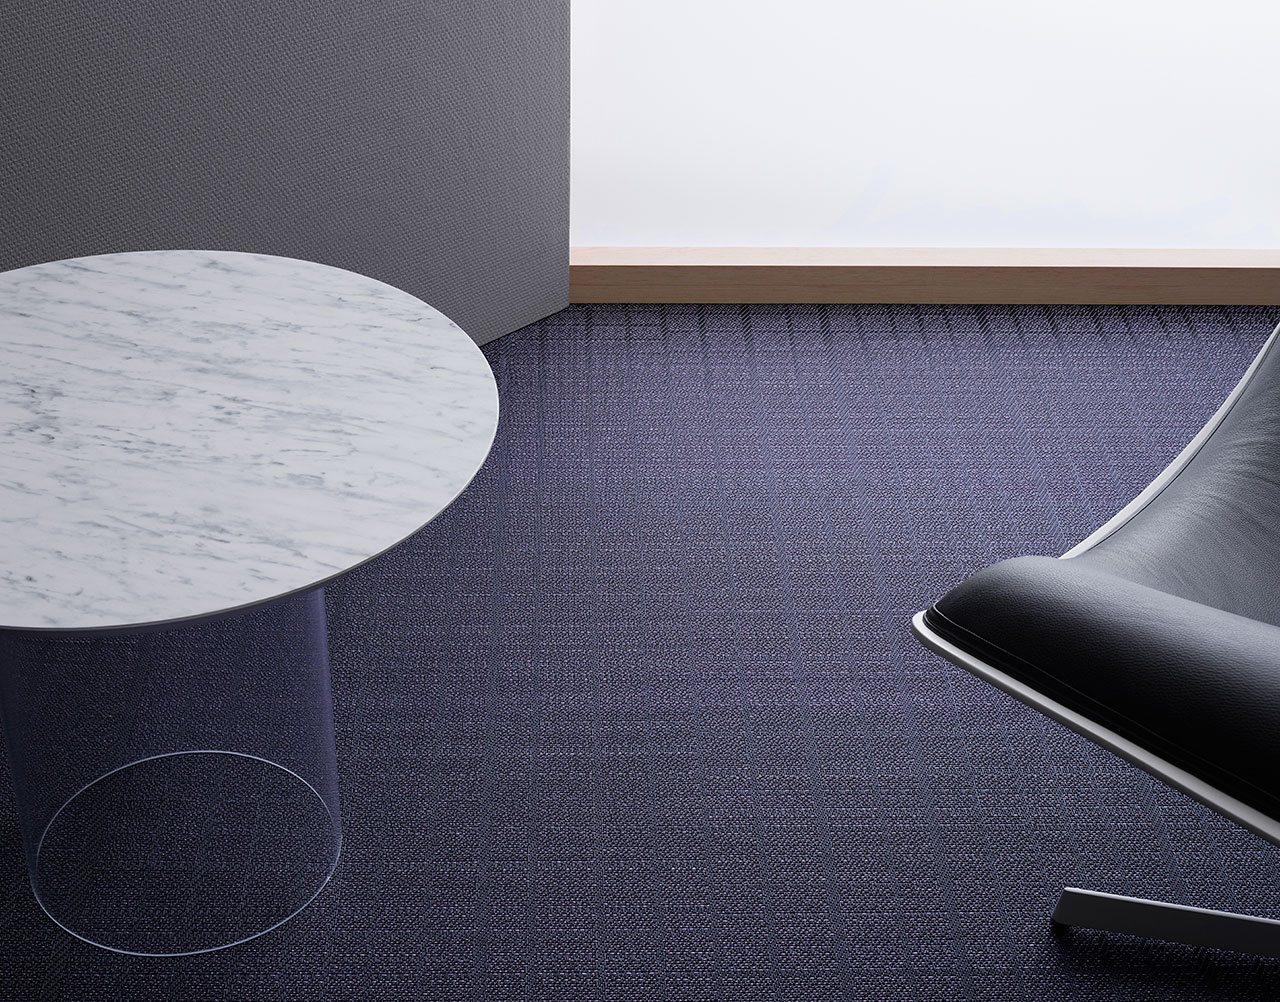 BOLON BY YOU – Grid Grey Lavender Gloss.Photo by Magnus Torsne.